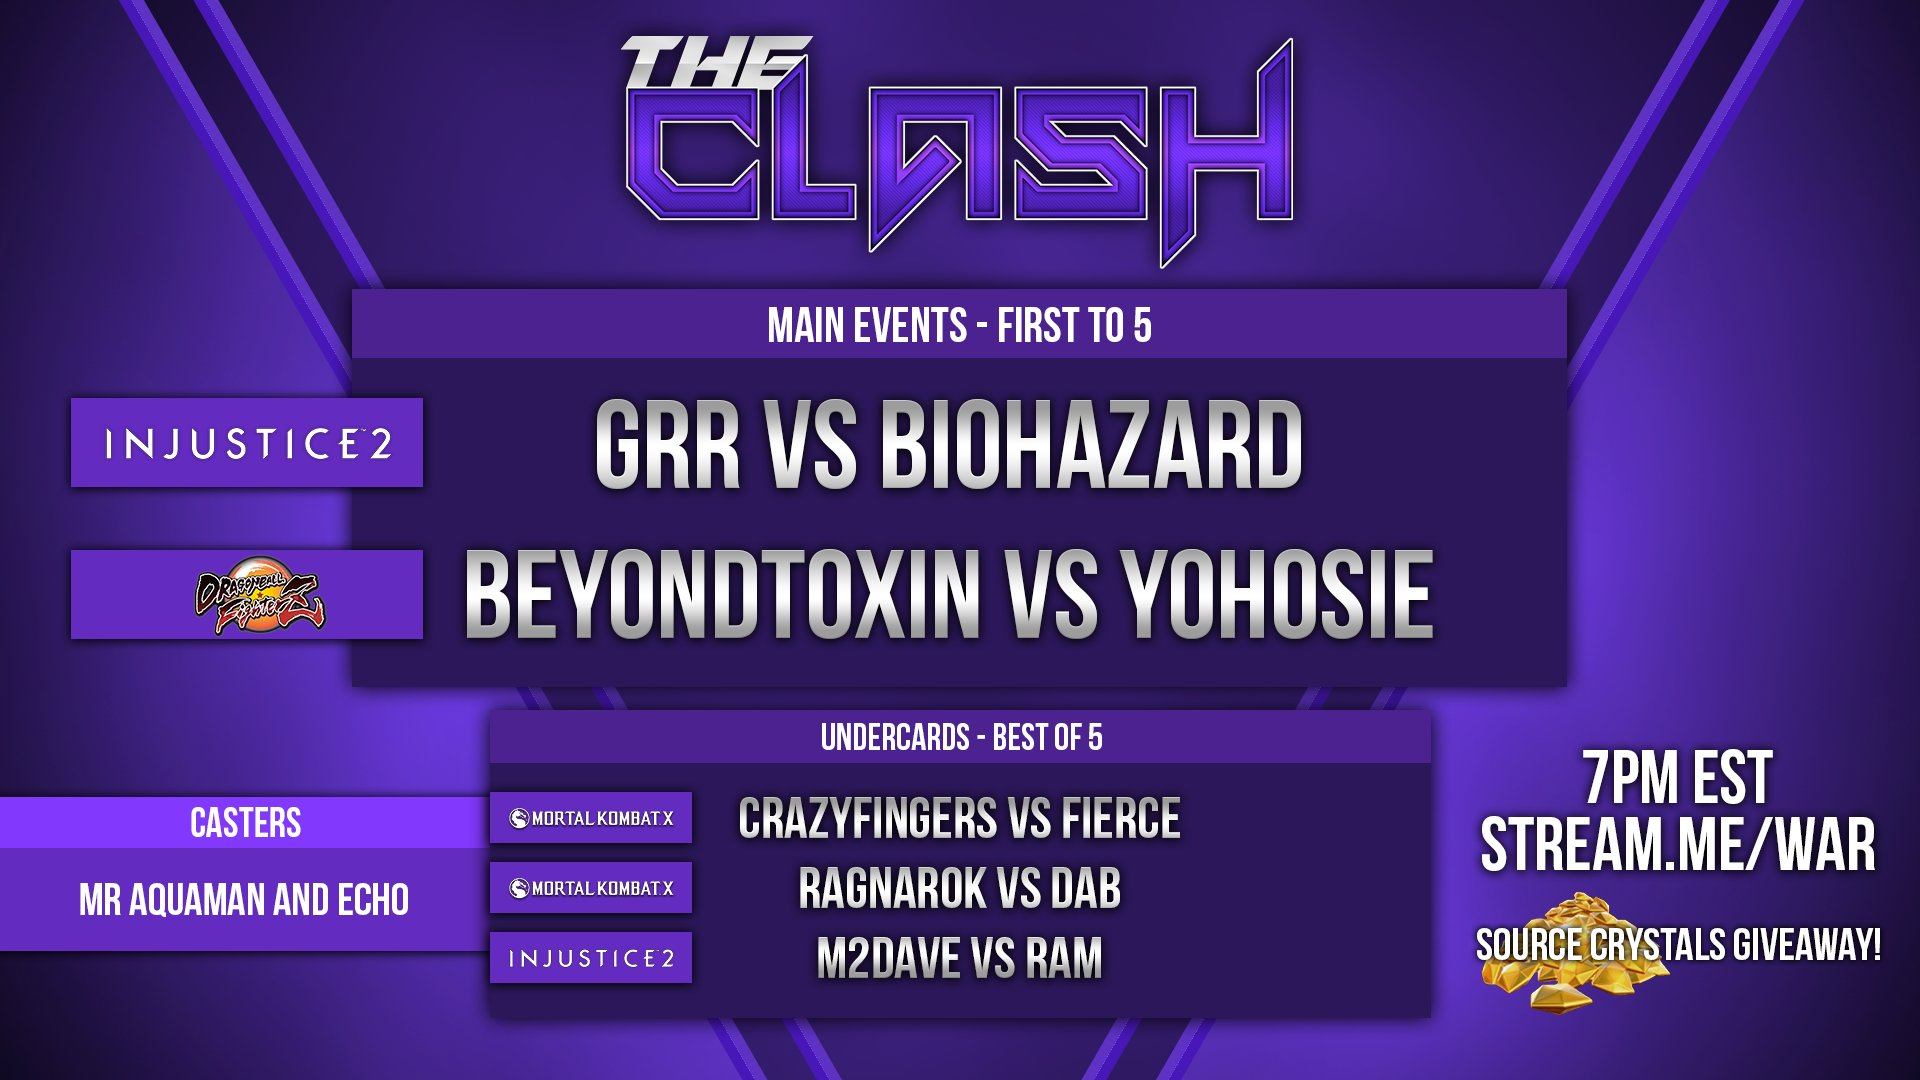 Don't forget tonight! #TheClash   THREE GAMES AND TOP PLAYERS GOING AT IT!   https://t.co/w0f5tJlBkx 7pm est https://t.co/iWnazJb5zF